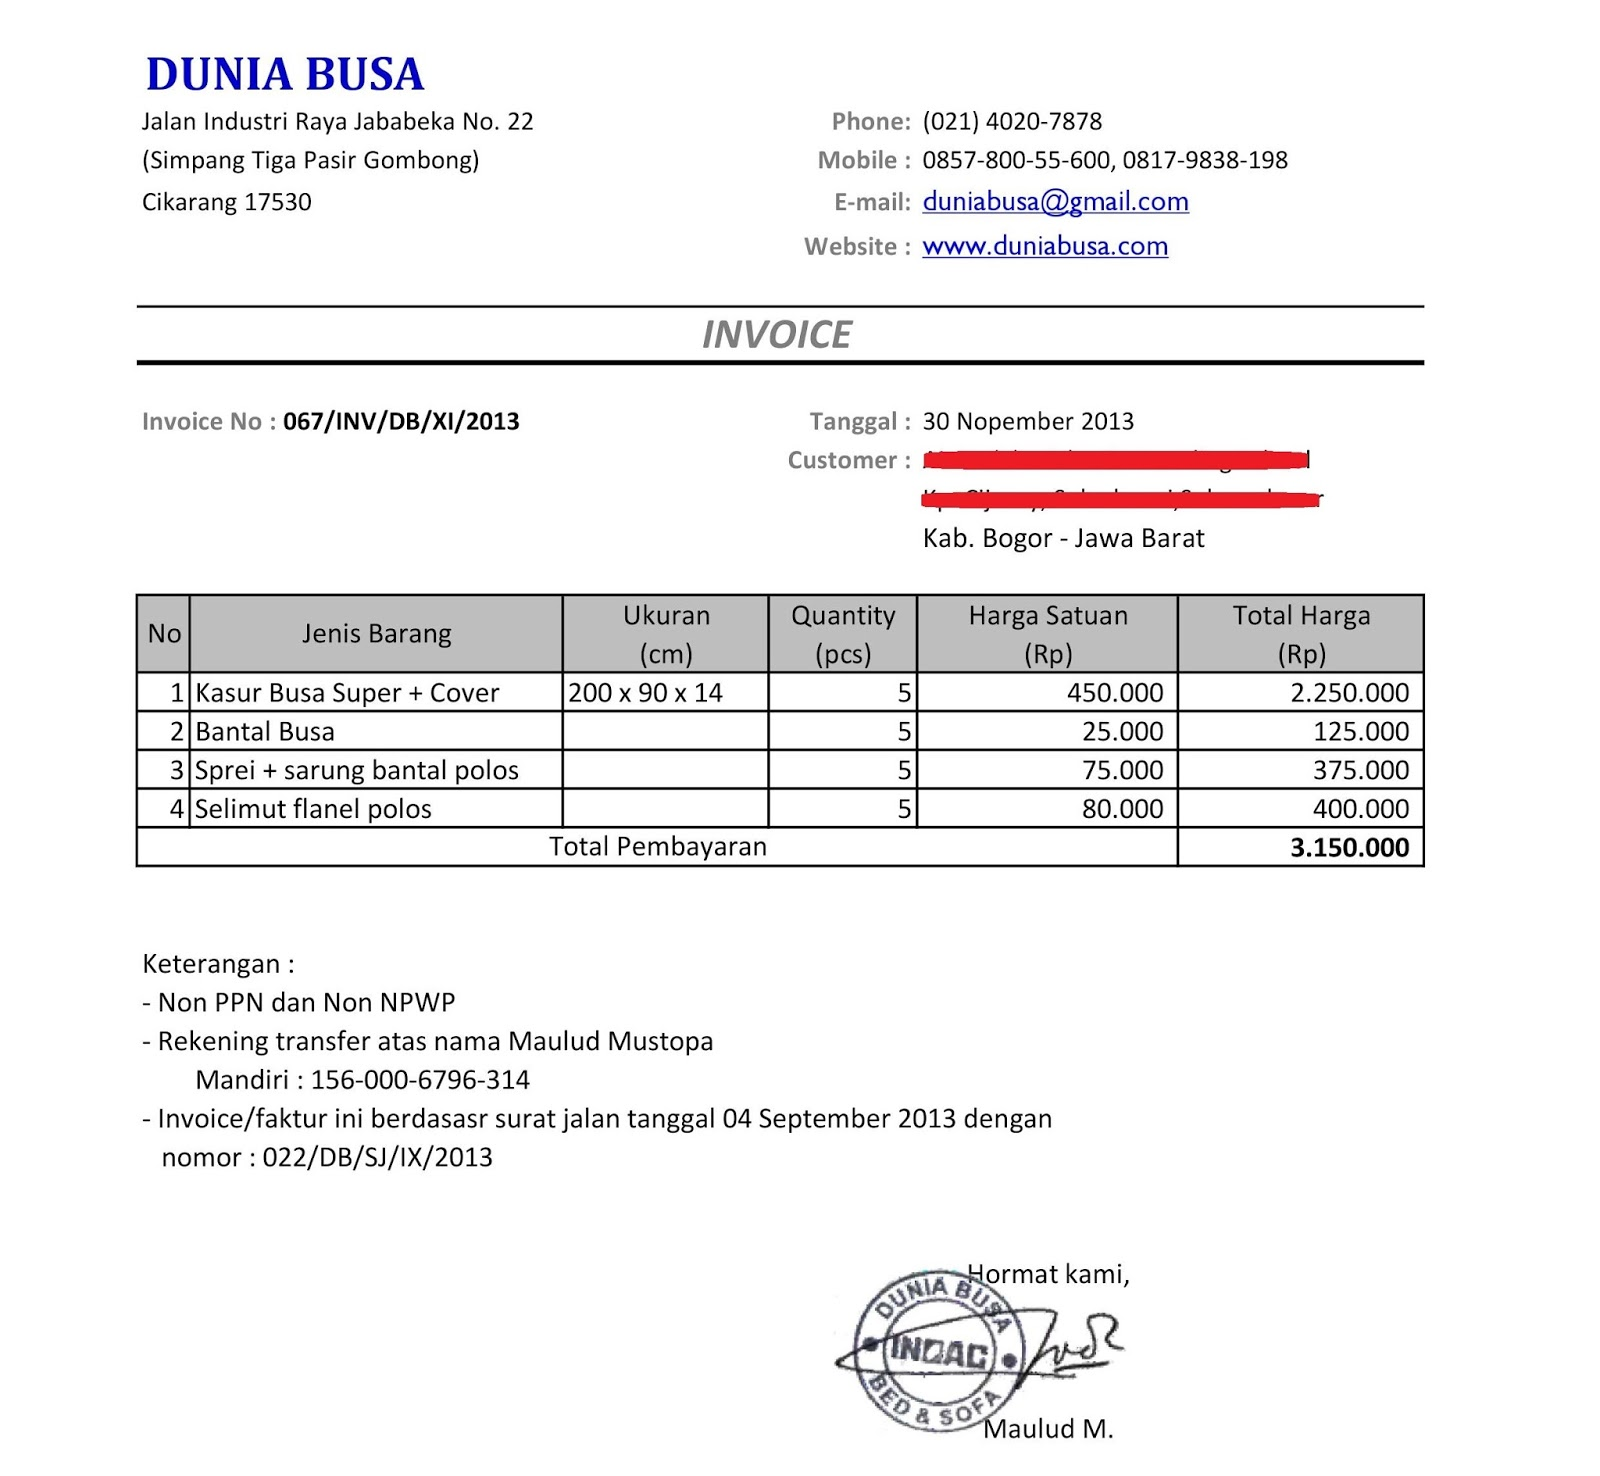 Garygrubbsus  Unique Free Invoice Online  Create Invoice Online  Invoice Template  With Goodlooking Contoh Format Invoice Atau Surat Tagihan  Brankas Arsip  Free Invoice Online With Alluring Invoice Template Mac Also Invoice Template In Excel In Addition Hotel Invoice Template And Dummy Invoice As Well As  Honda Accord Invoice Price Additionally Pay Ebay Invoice From Sklepco With Garygrubbsus  Goodlooking Free Invoice Online  Create Invoice Online  Invoice Template  With Alluring Contoh Format Invoice Atau Surat Tagihan  Brankas Arsip  Free Invoice Online And Unique Invoice Template Mac Also Invoice Template In Excel In Addition Hotel Invoice Template From Sklepco